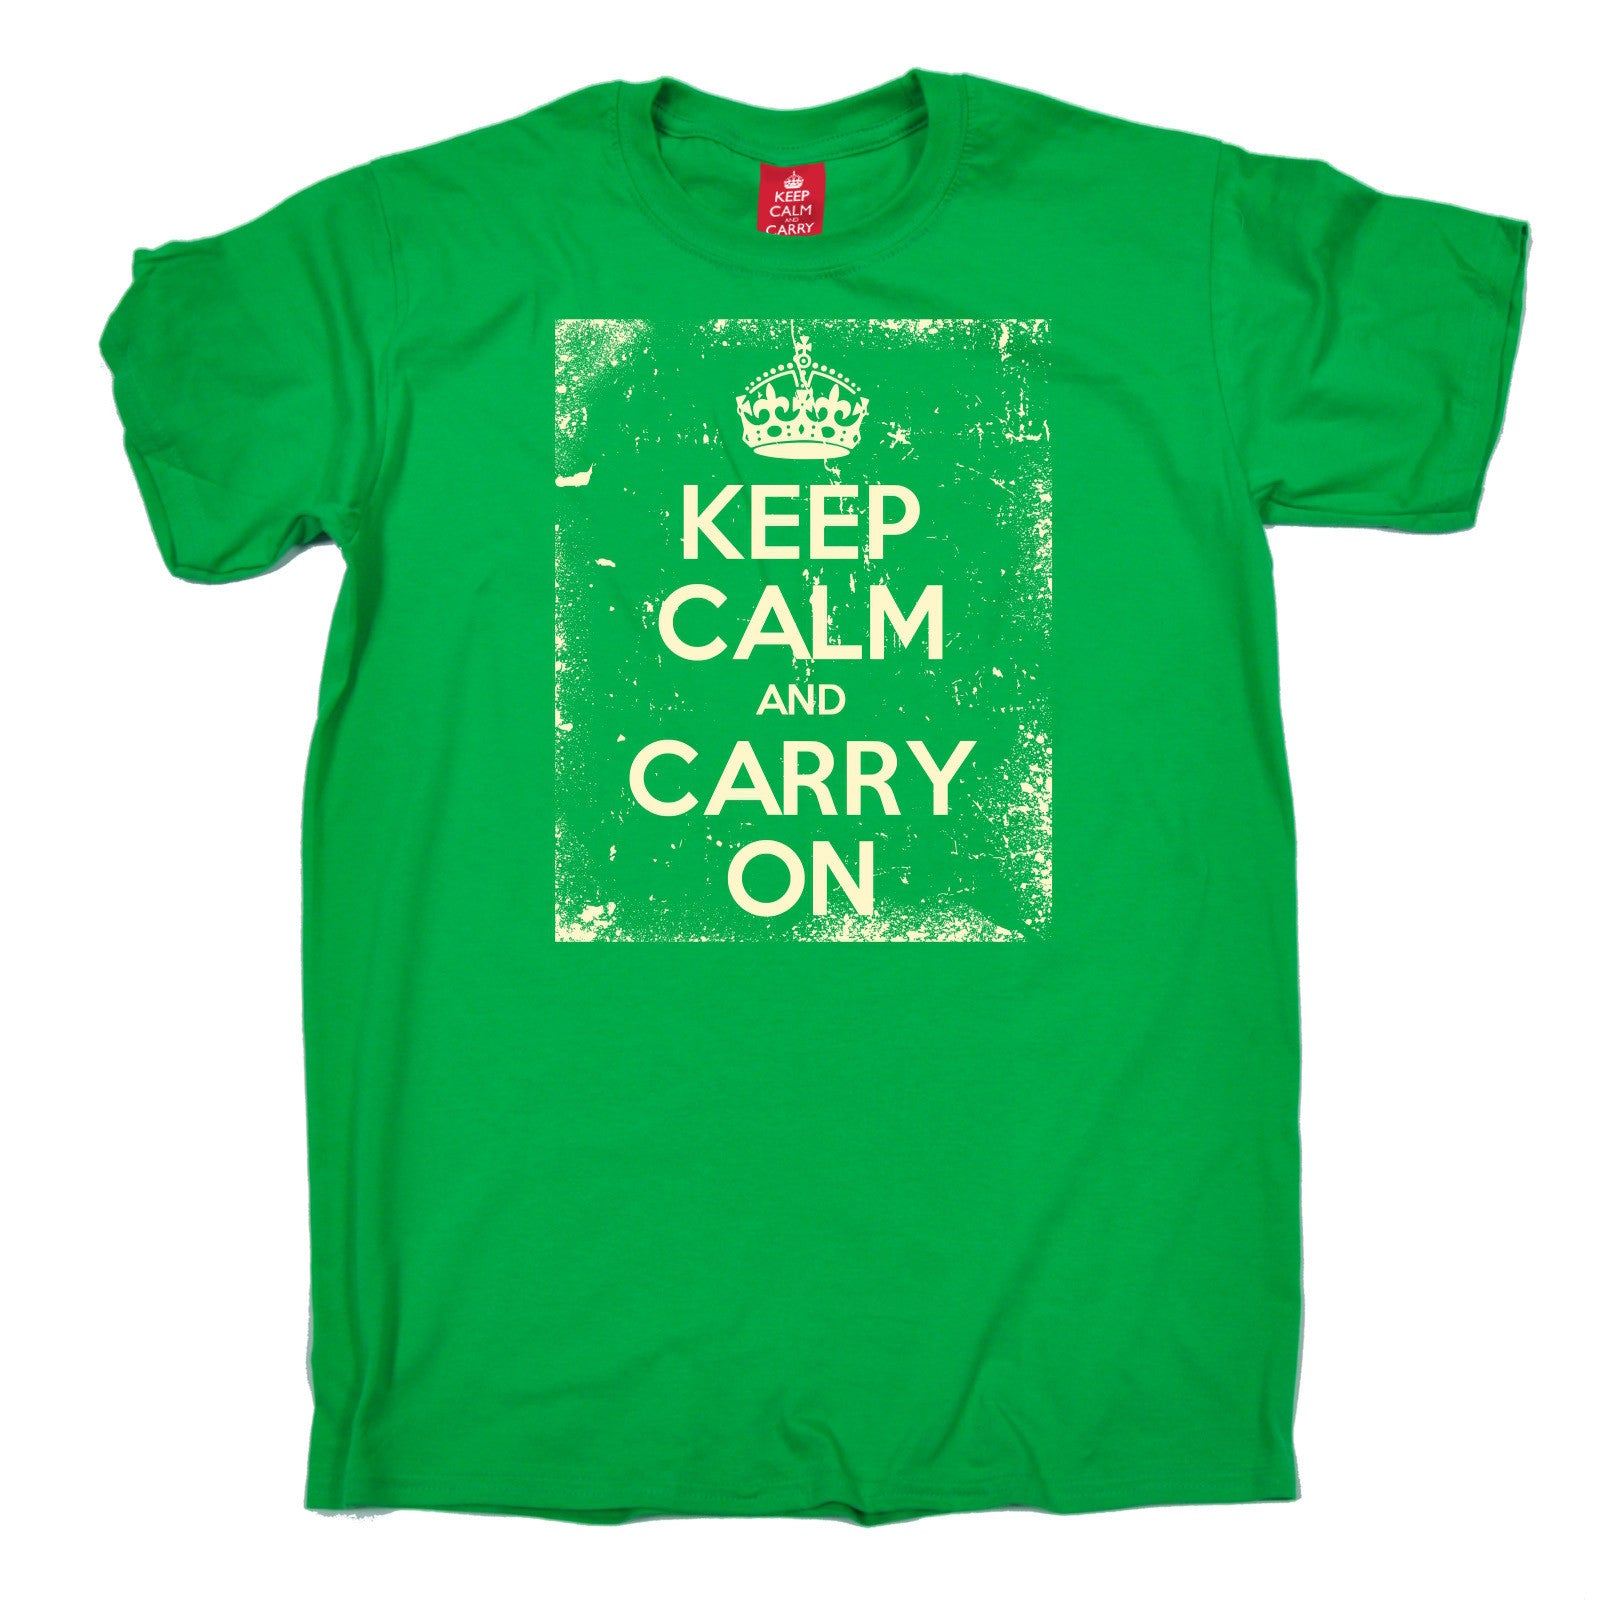 Keep calm and carry on t shirt distressed design british for T shirt design keep calm